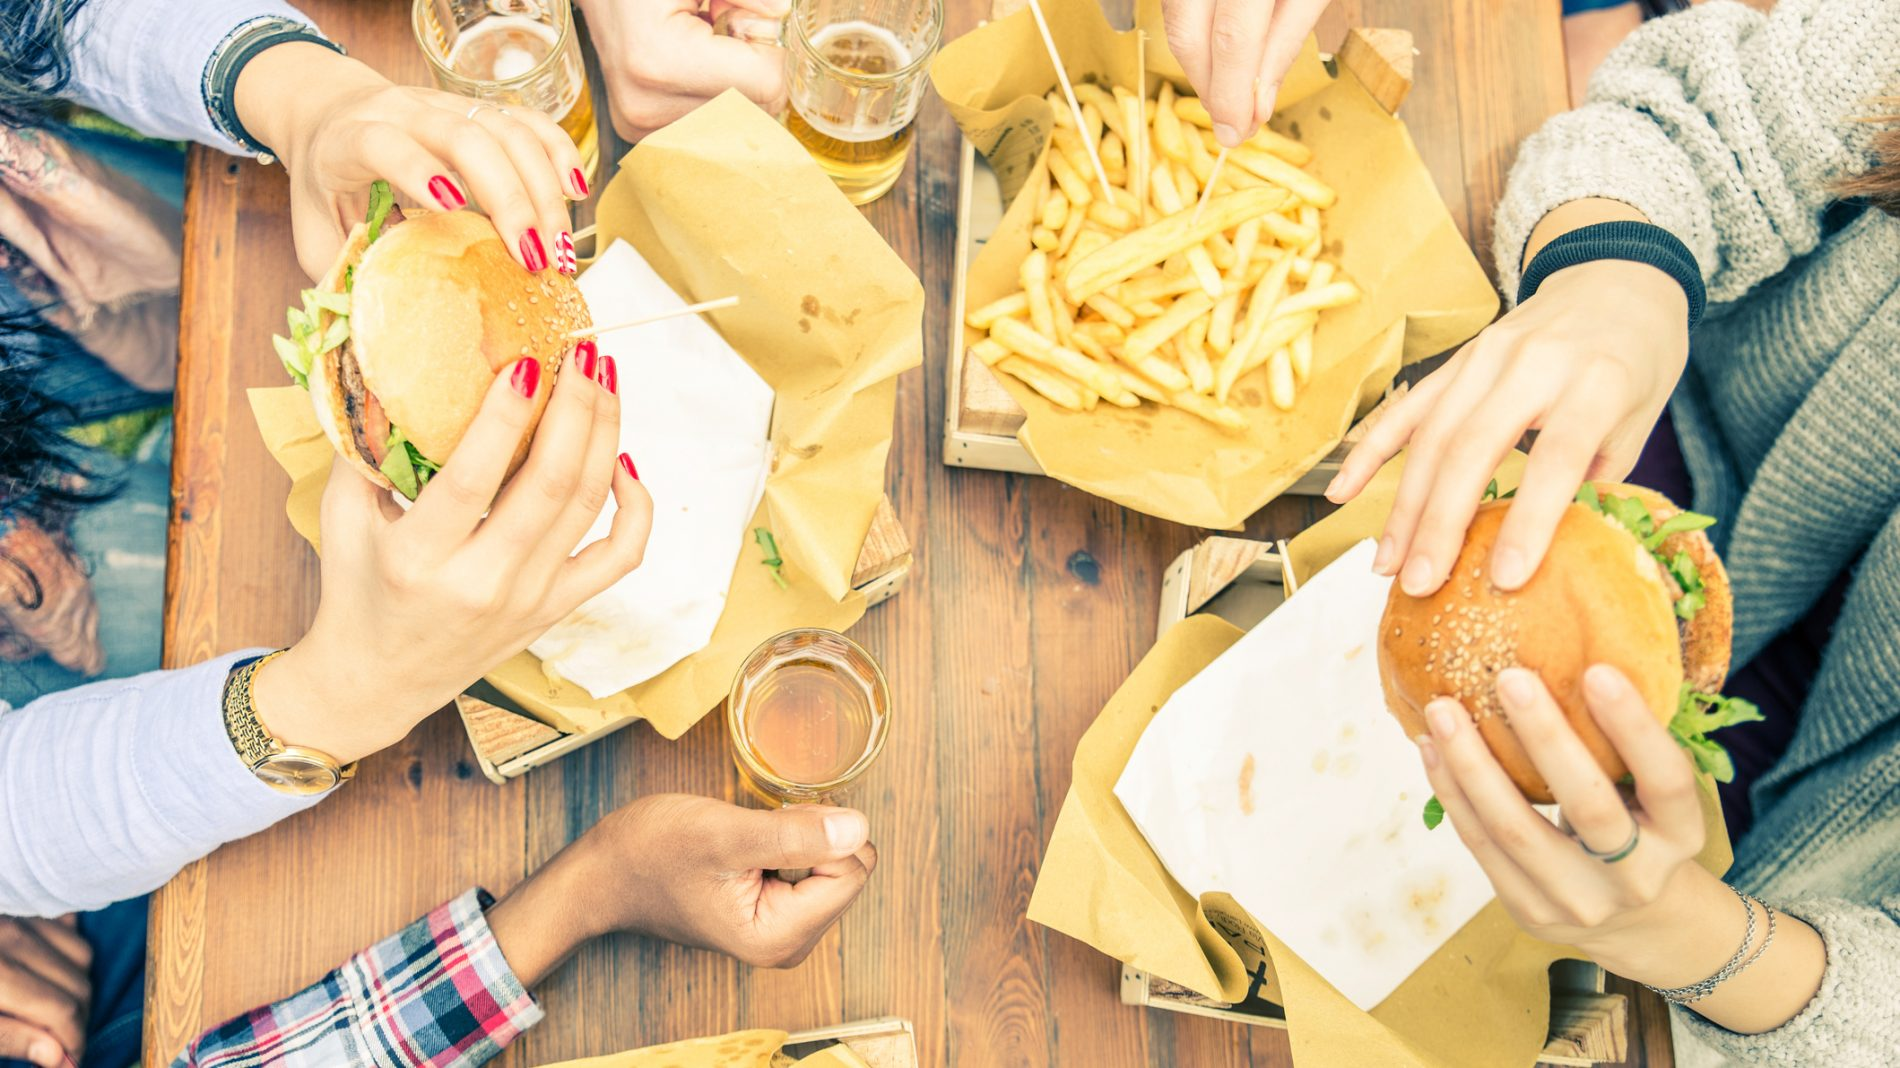 Picture of people sitting at table eating burgers